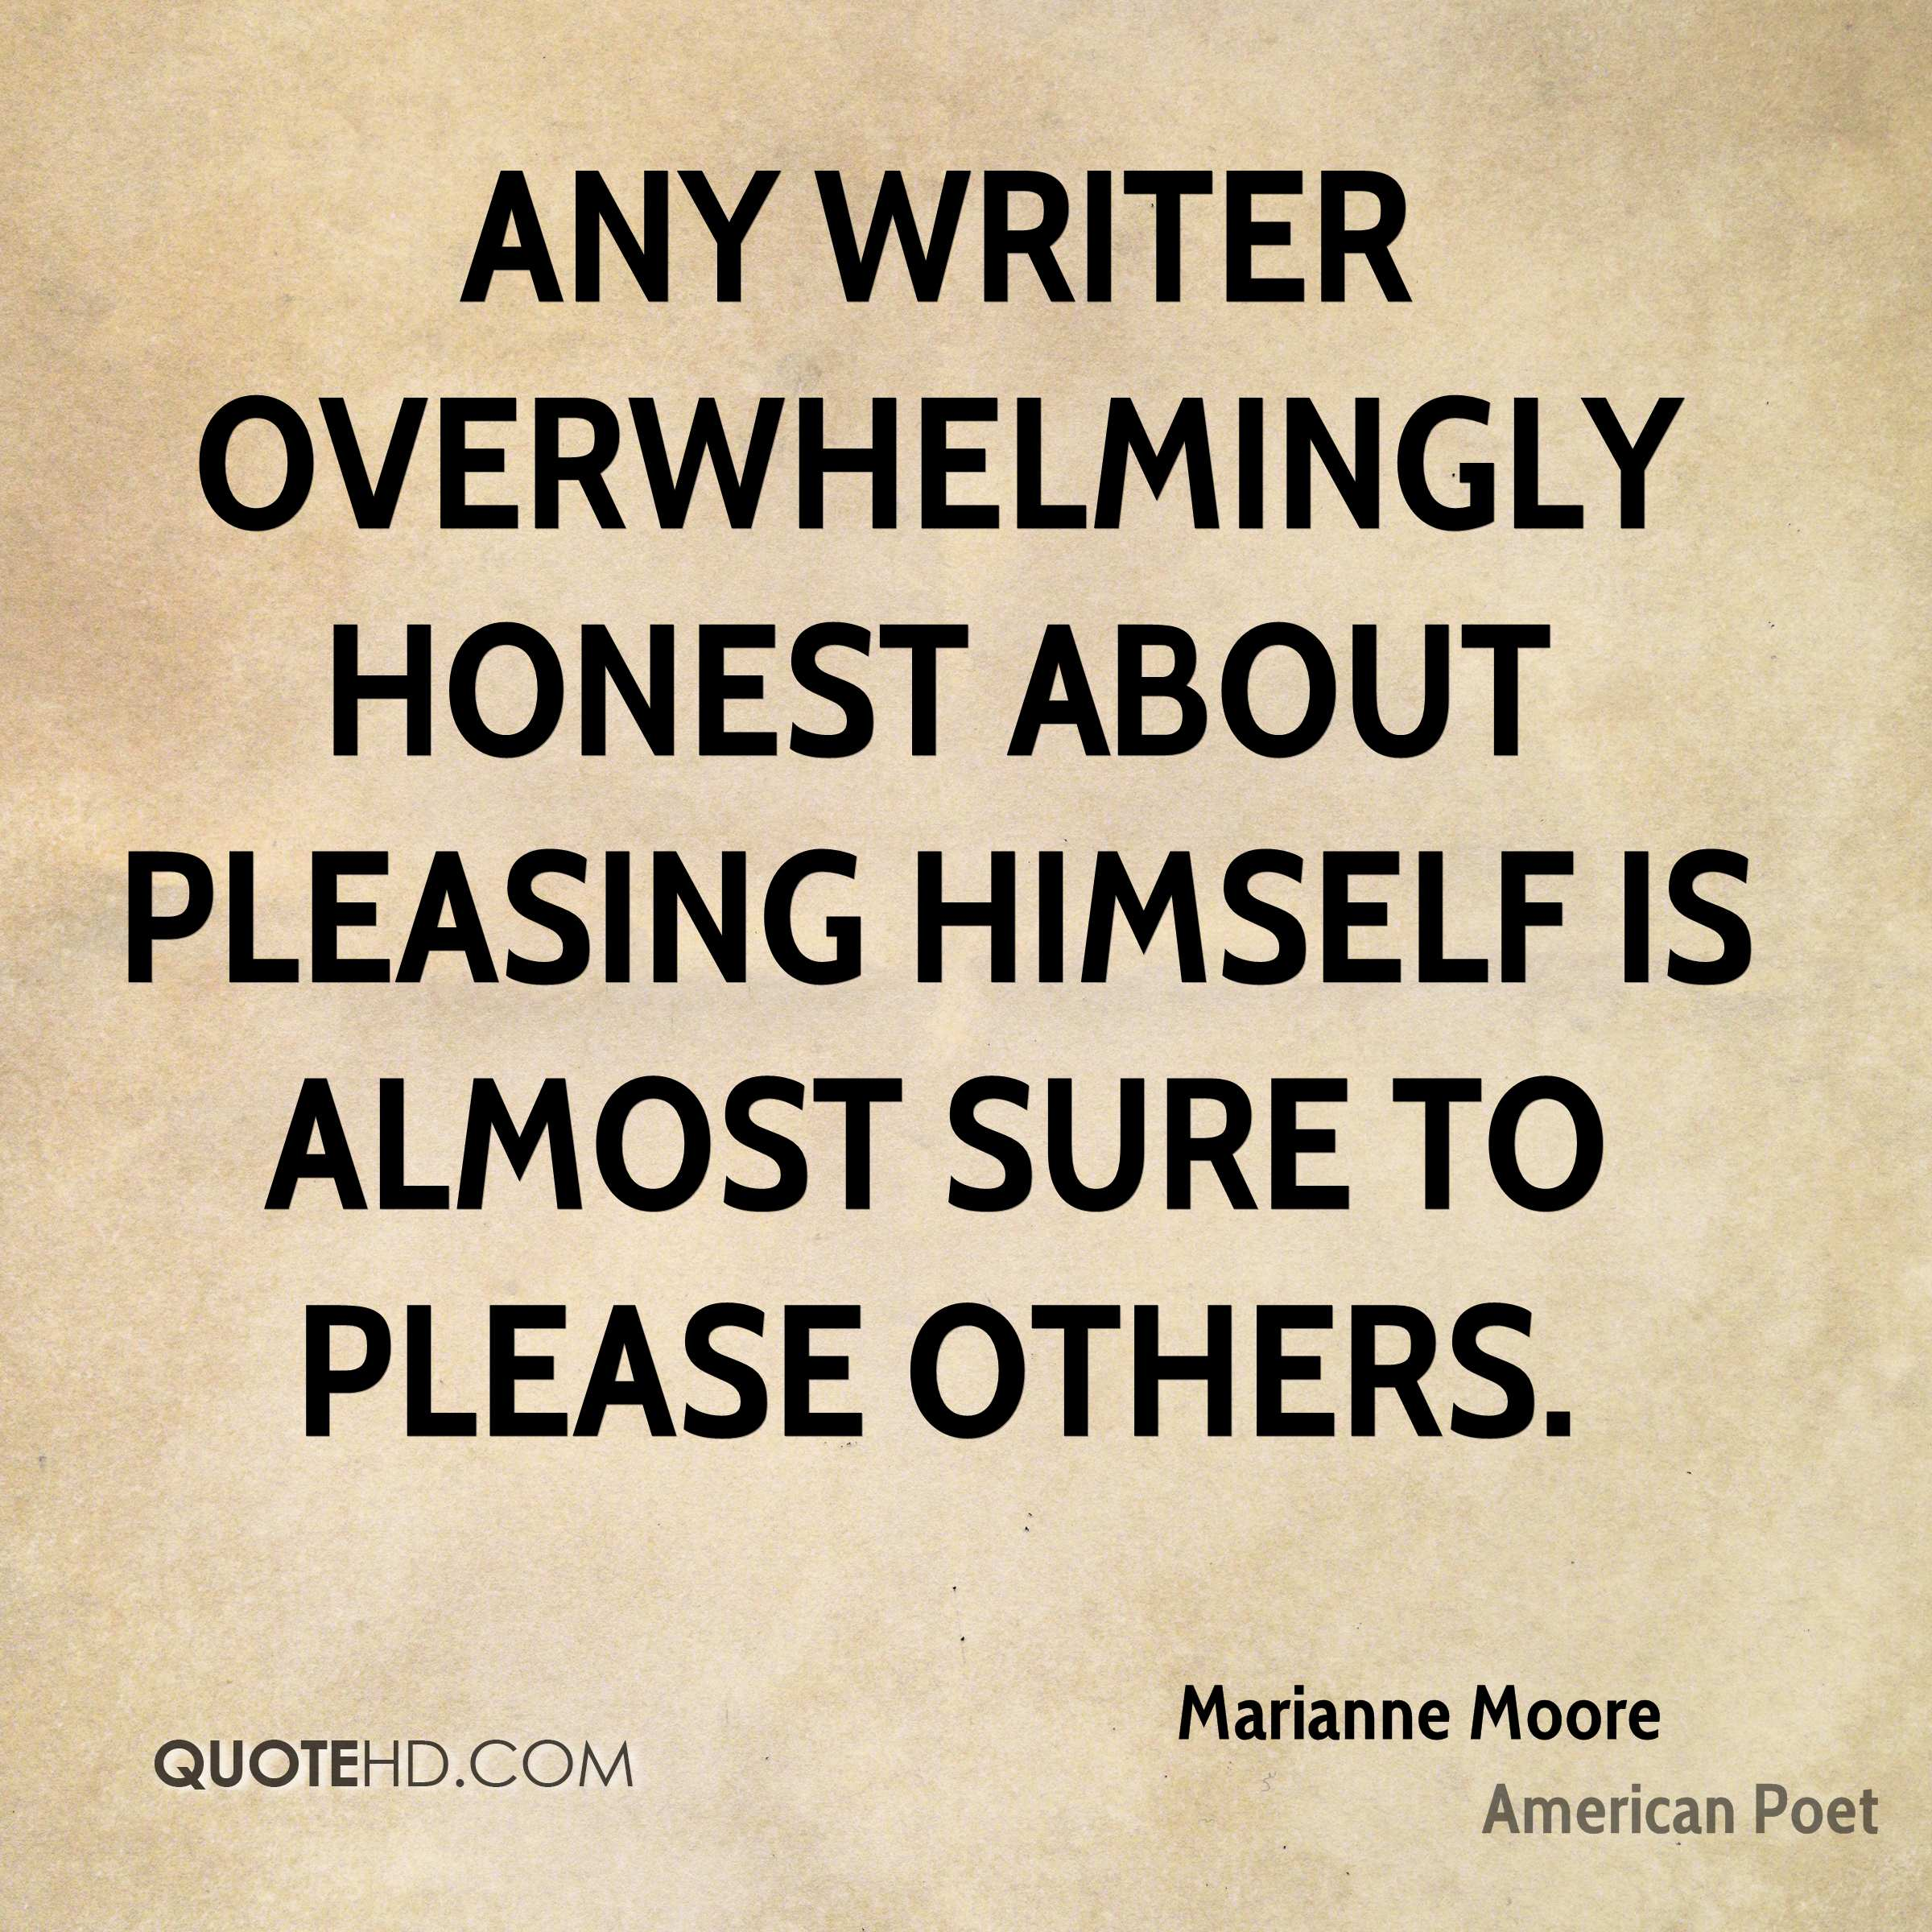 Any writer overwhelmingly honest about pleasing himself is almost sure to please others.